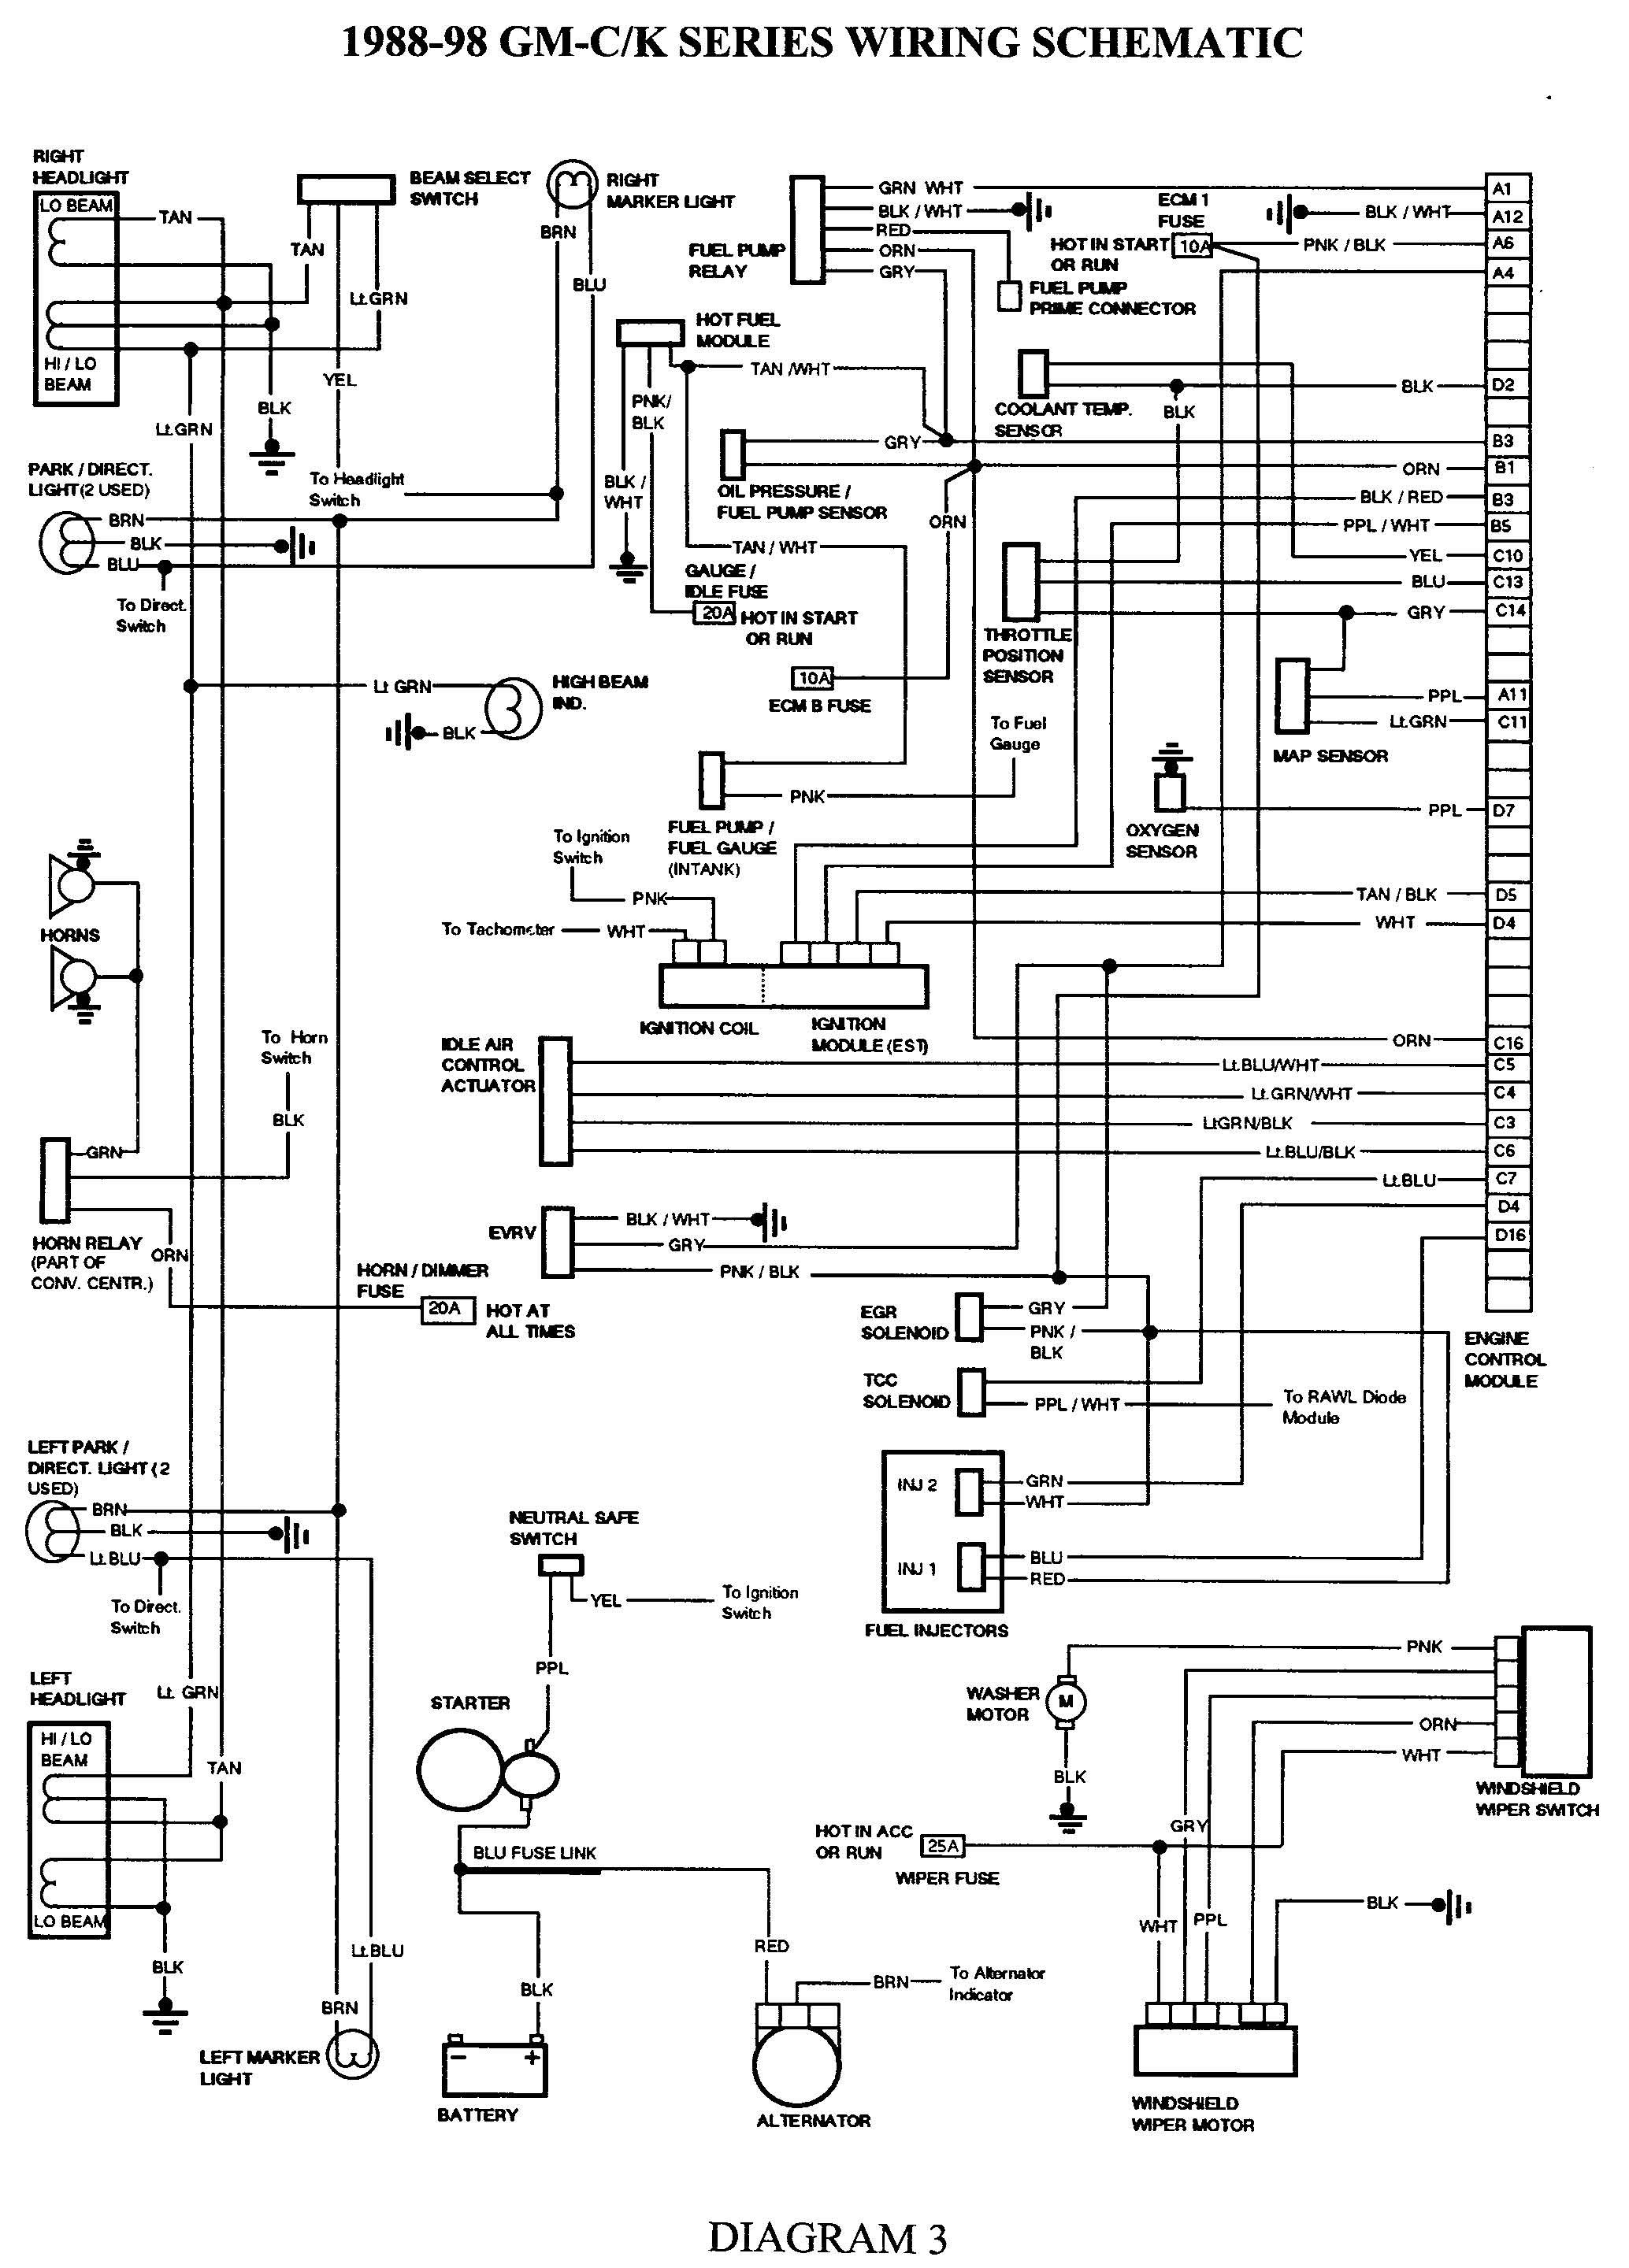 b2f2e5dbdc07dada83ef514f6d4ce3d4 gmc truck wiring diagrams on gm wiring harness diagram 88 98 kc gm wiring harness diagram at bayanpartner.co